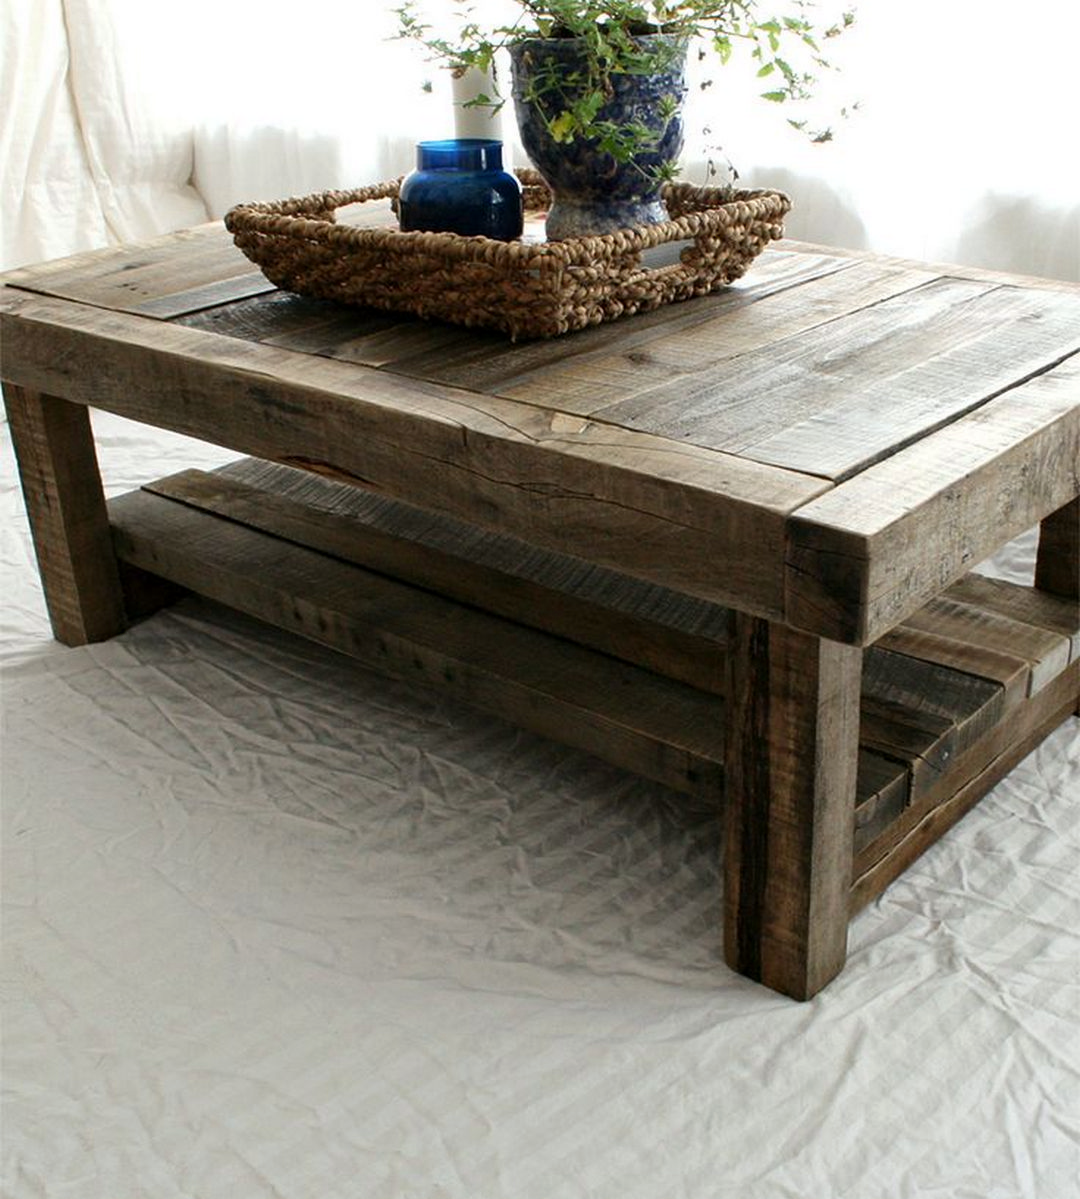 How To Decorate Your Coffee Table Design Like A Pro Wood Coffee Table Rustic Barnwood Coffee Table Reclaimed Wood Coffee Table [ 1199 x 1080 Pixel ]